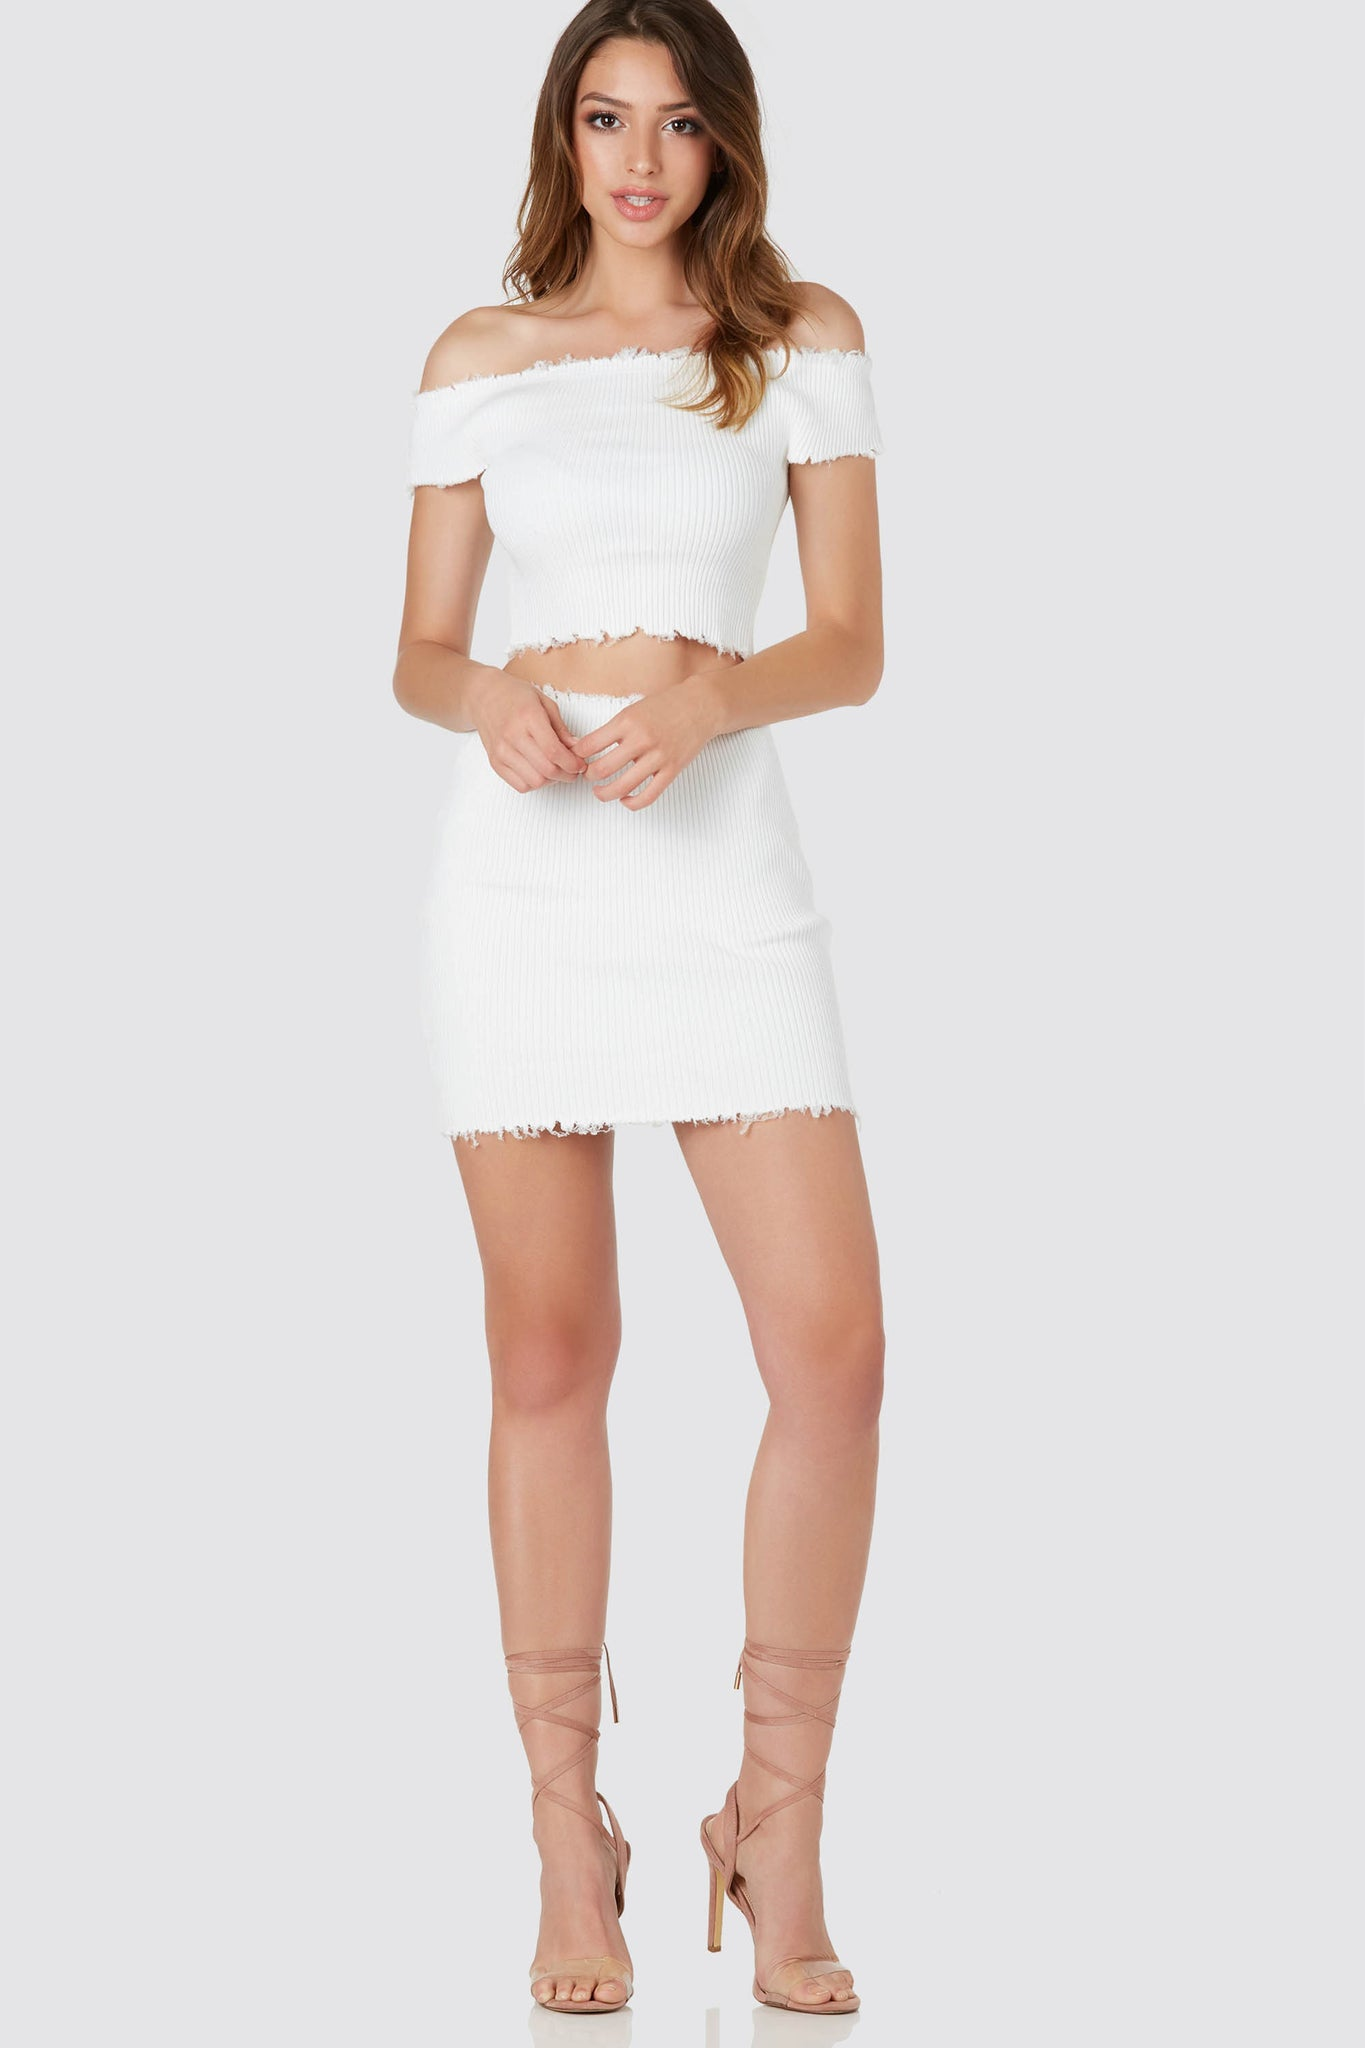 Sassy ribbed skirt with trendy raw hem finish and flattering bodycon fit.